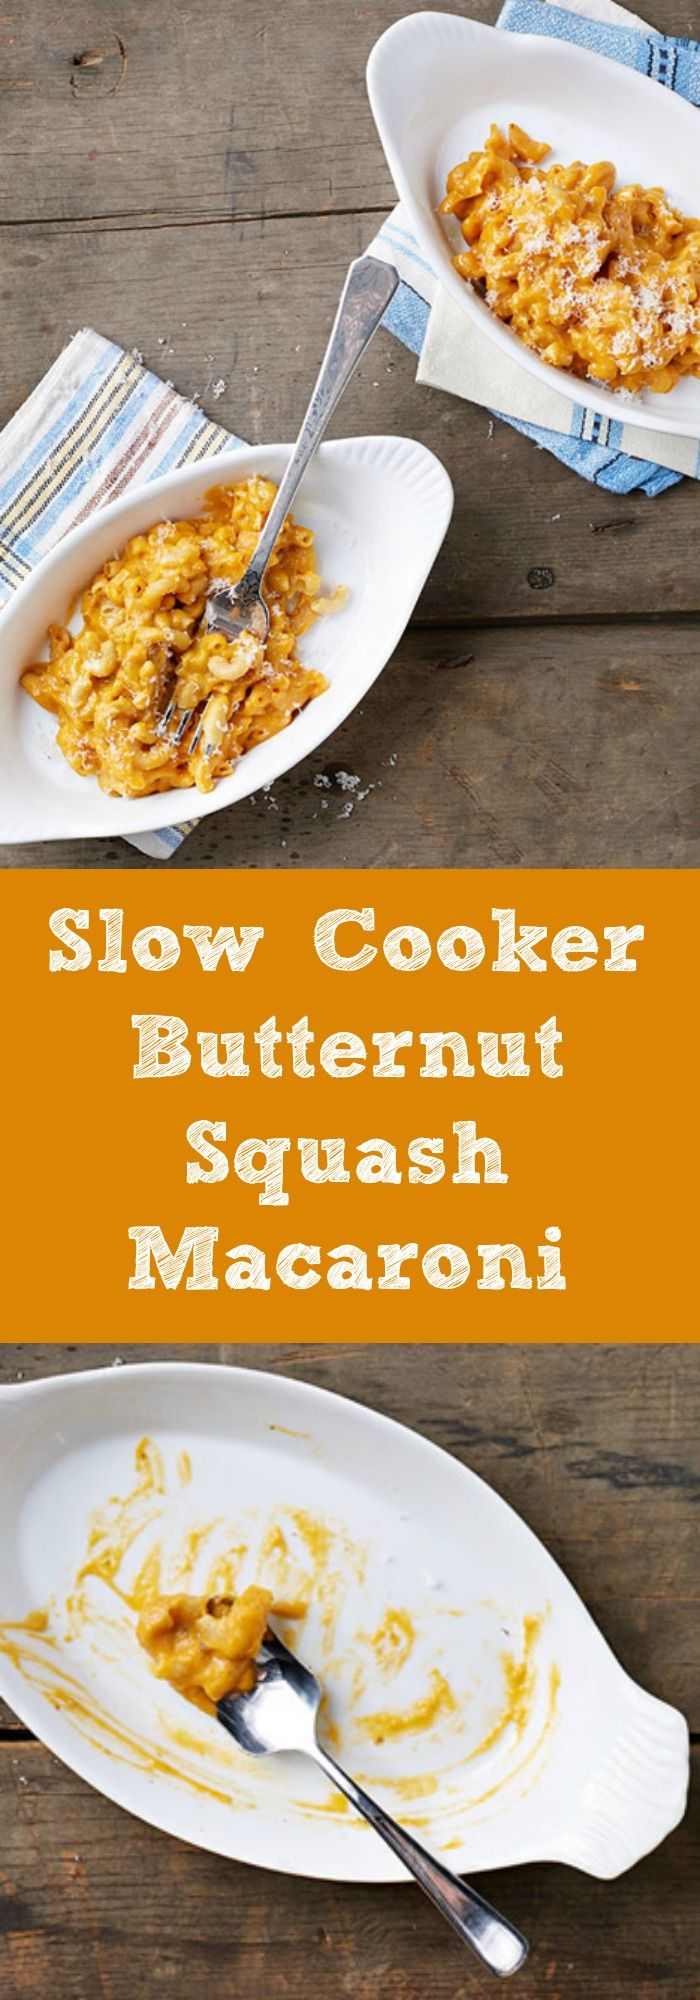 Slow Cooker Butternut Squash Macaroni and it's vegan too!